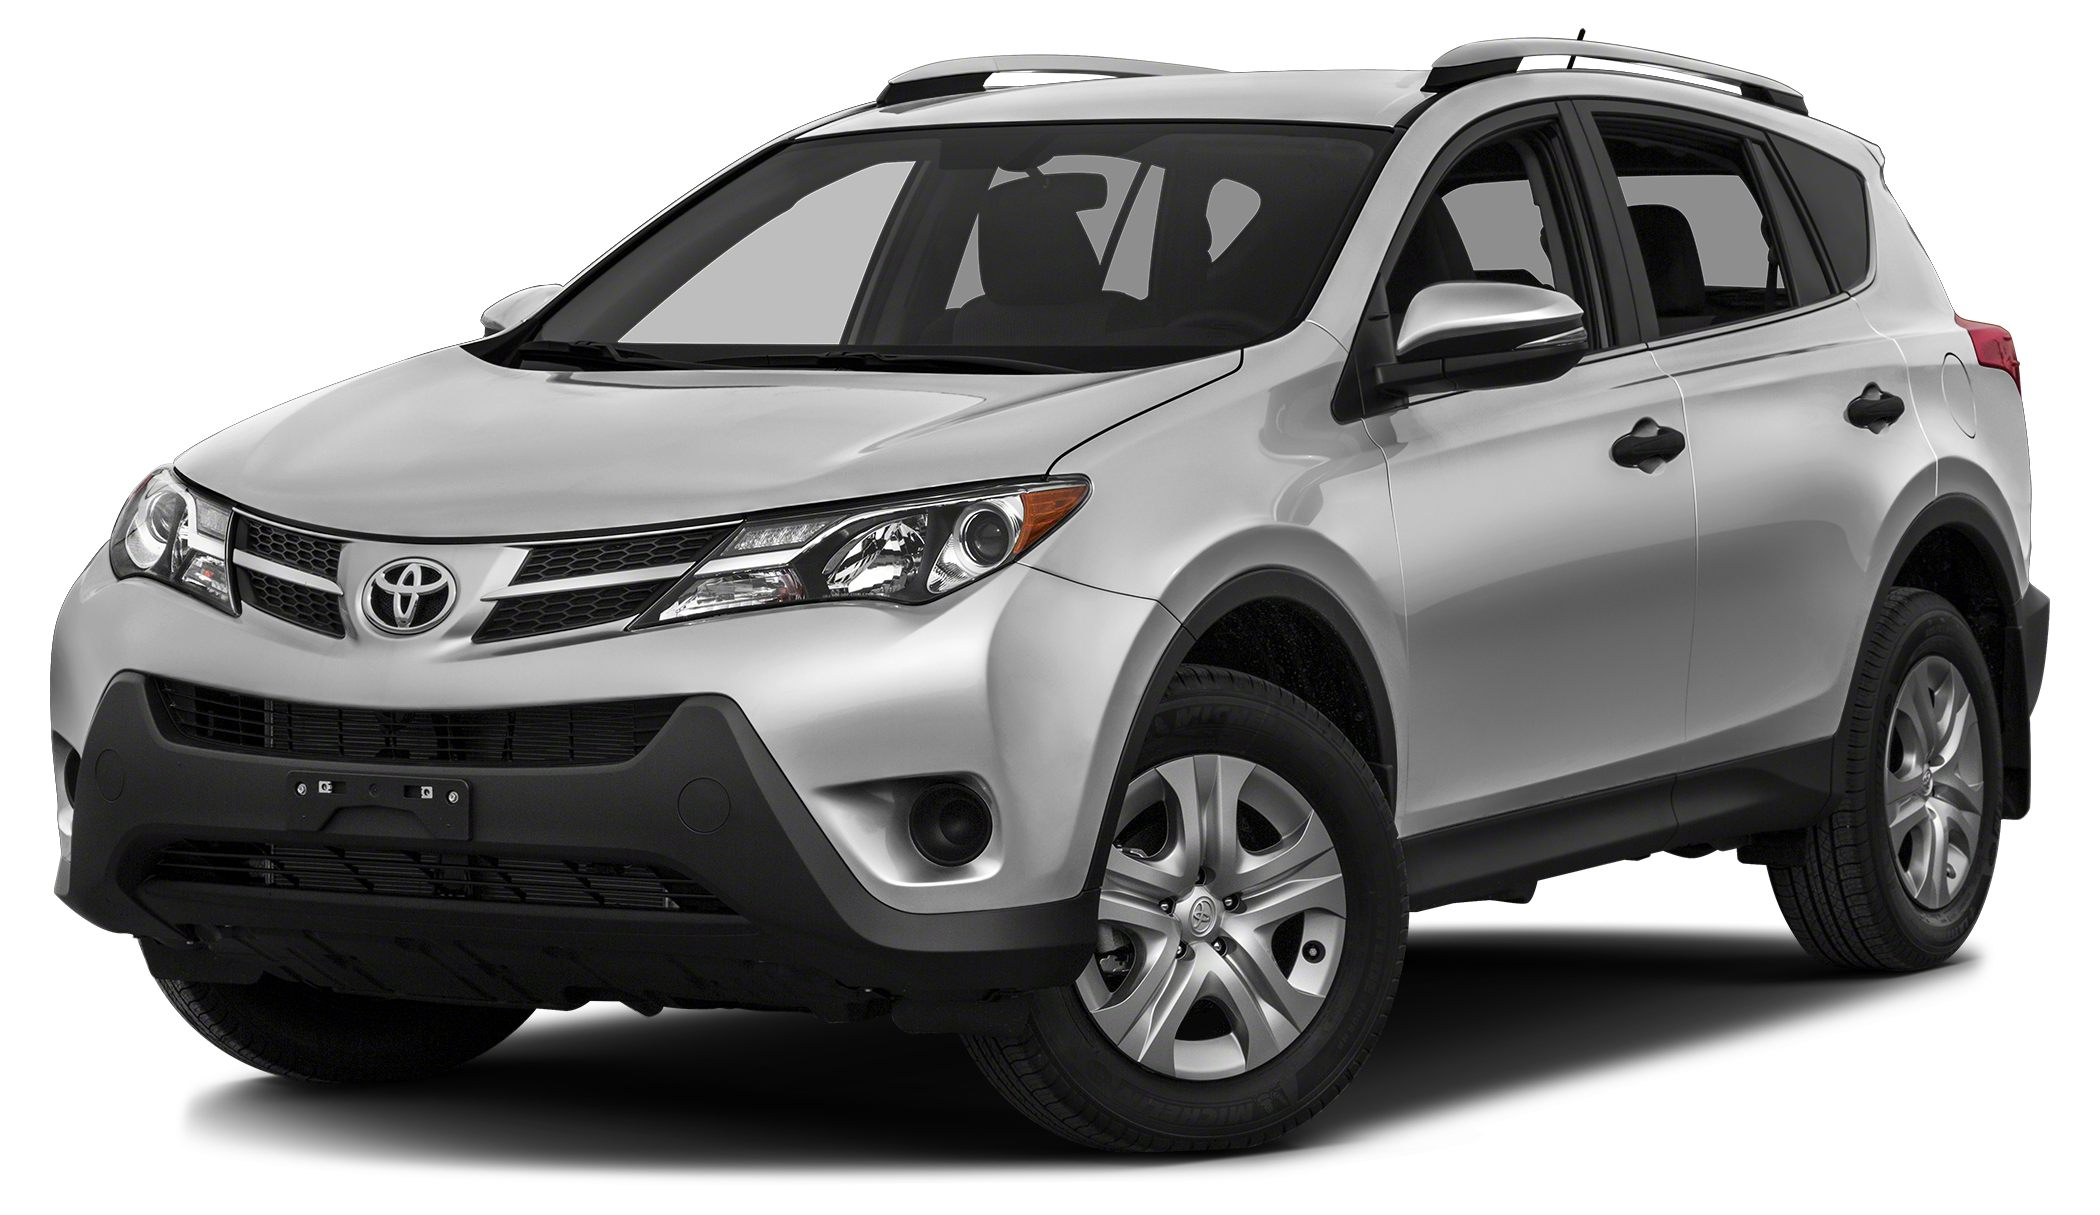 2015 Toyota RAV4 XLE XLE trim CARFAX 1-Owner EPA 29 MPG Hwy22 MPG City Moonroof Bluetooth iP